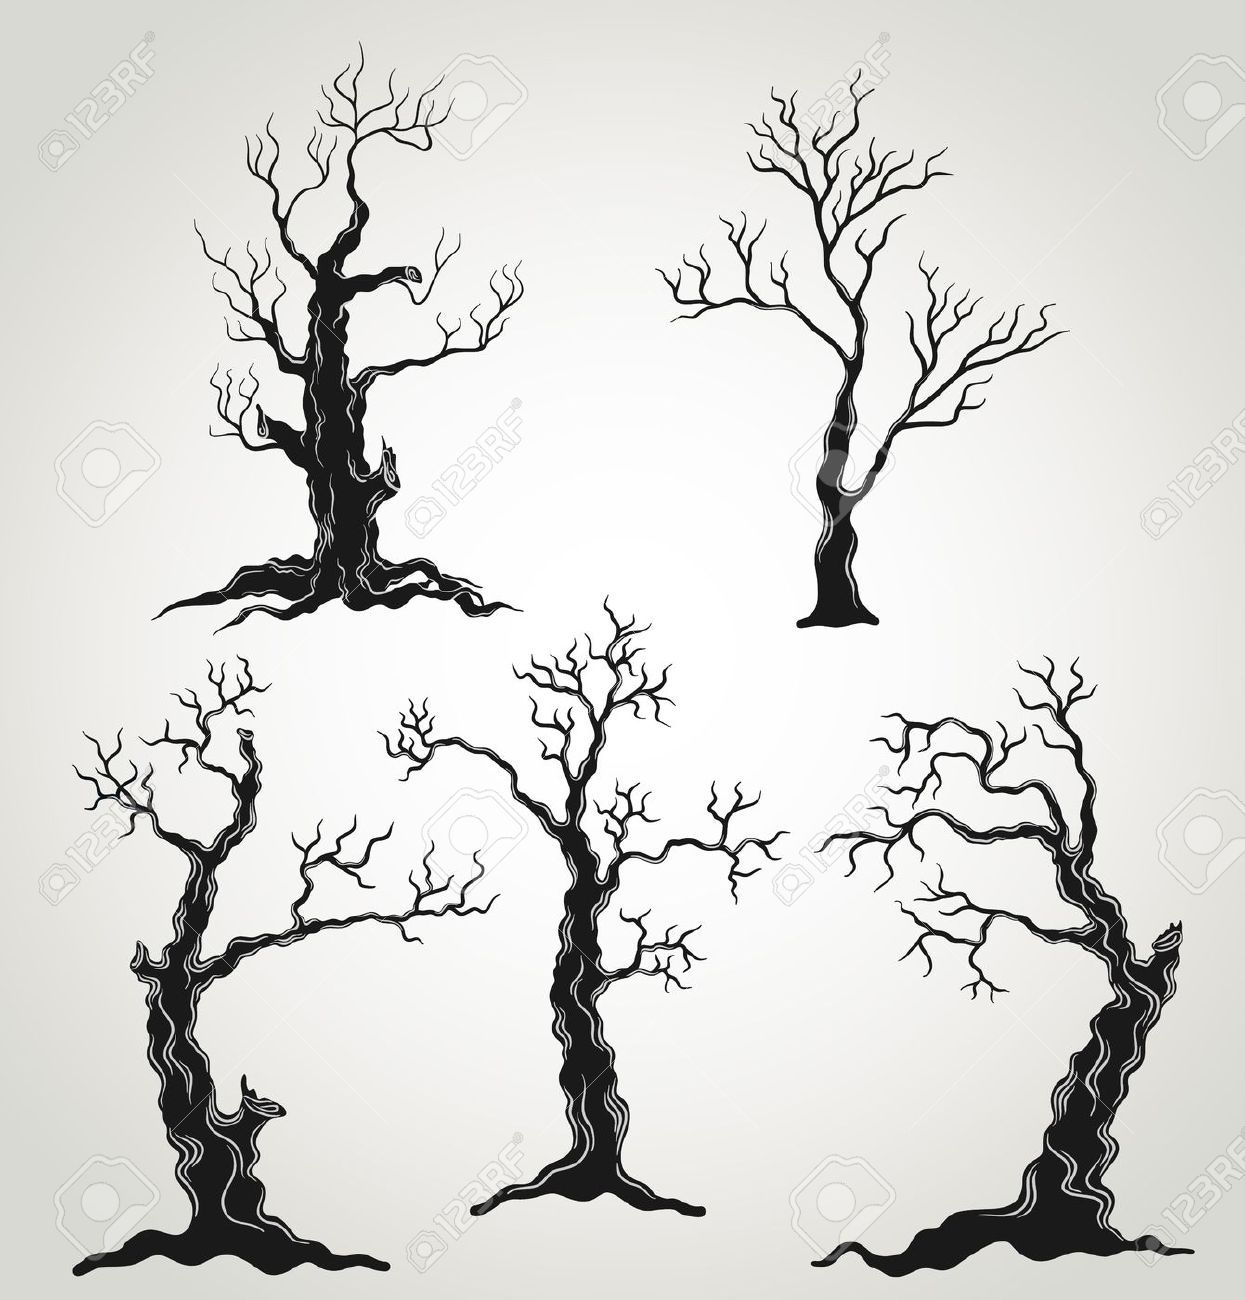 spooky tree stock vector illustration and royalty free spooky tree  [ 1245 x 1300 Pixel ]